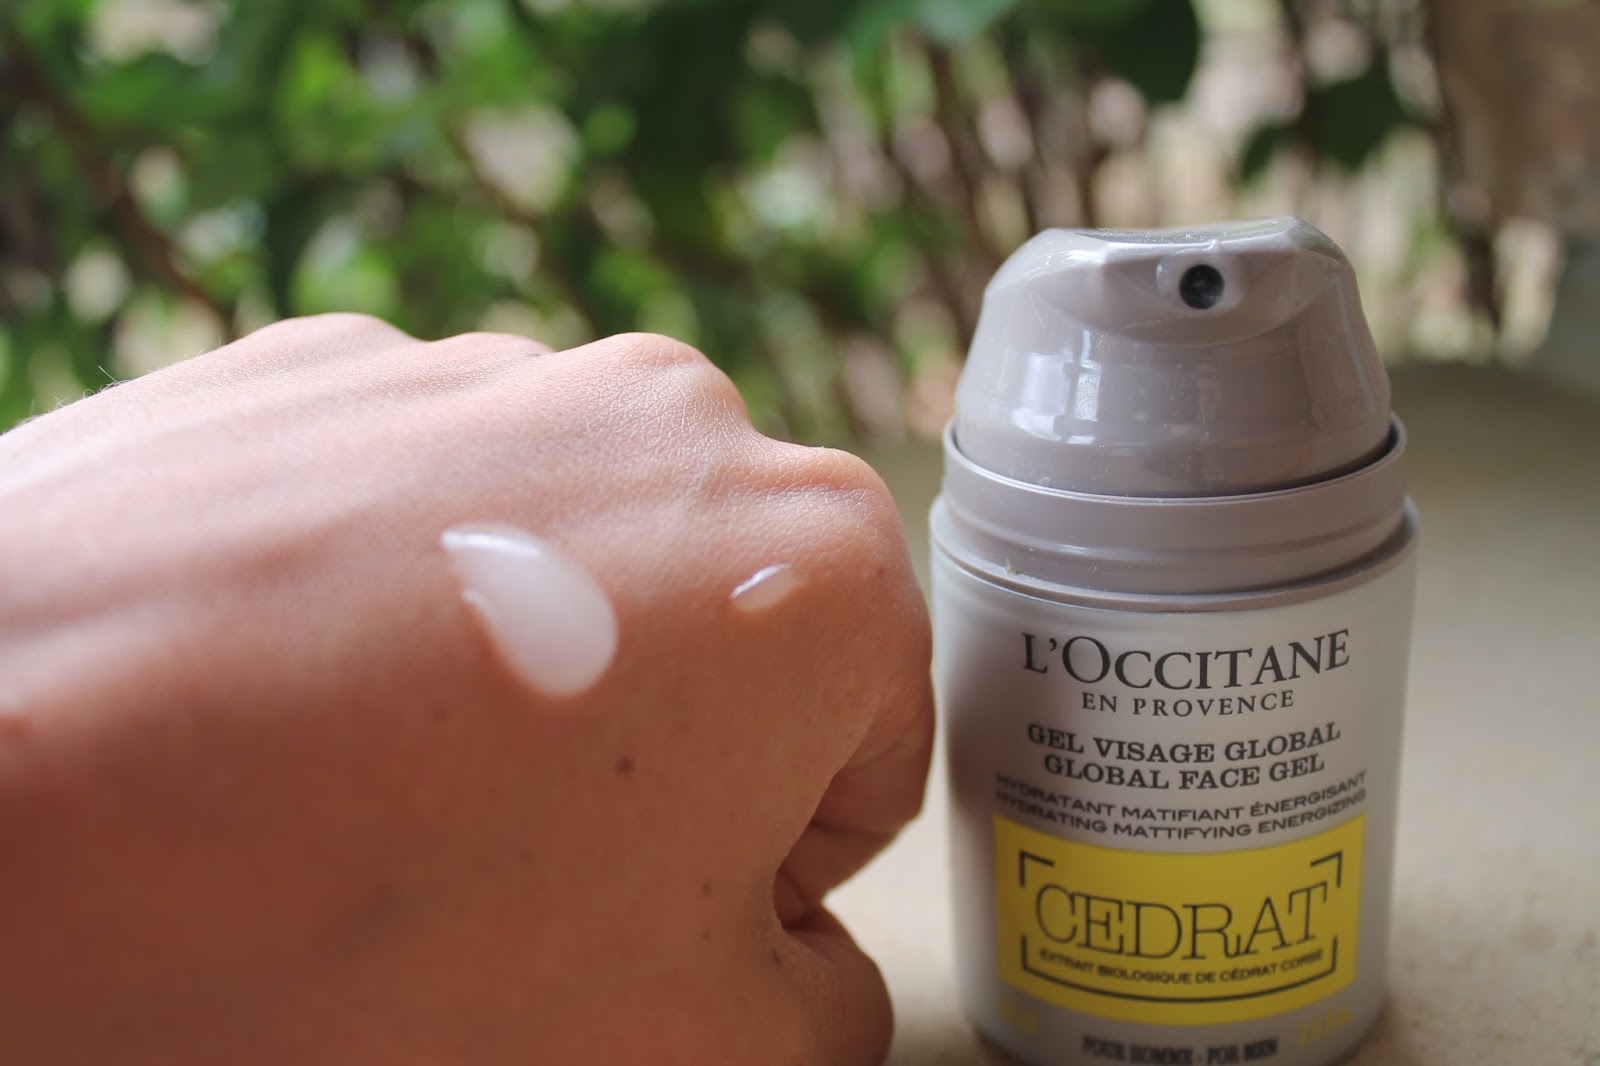 L'OCCITANE CEDRAT GLOBAL FACE GEL